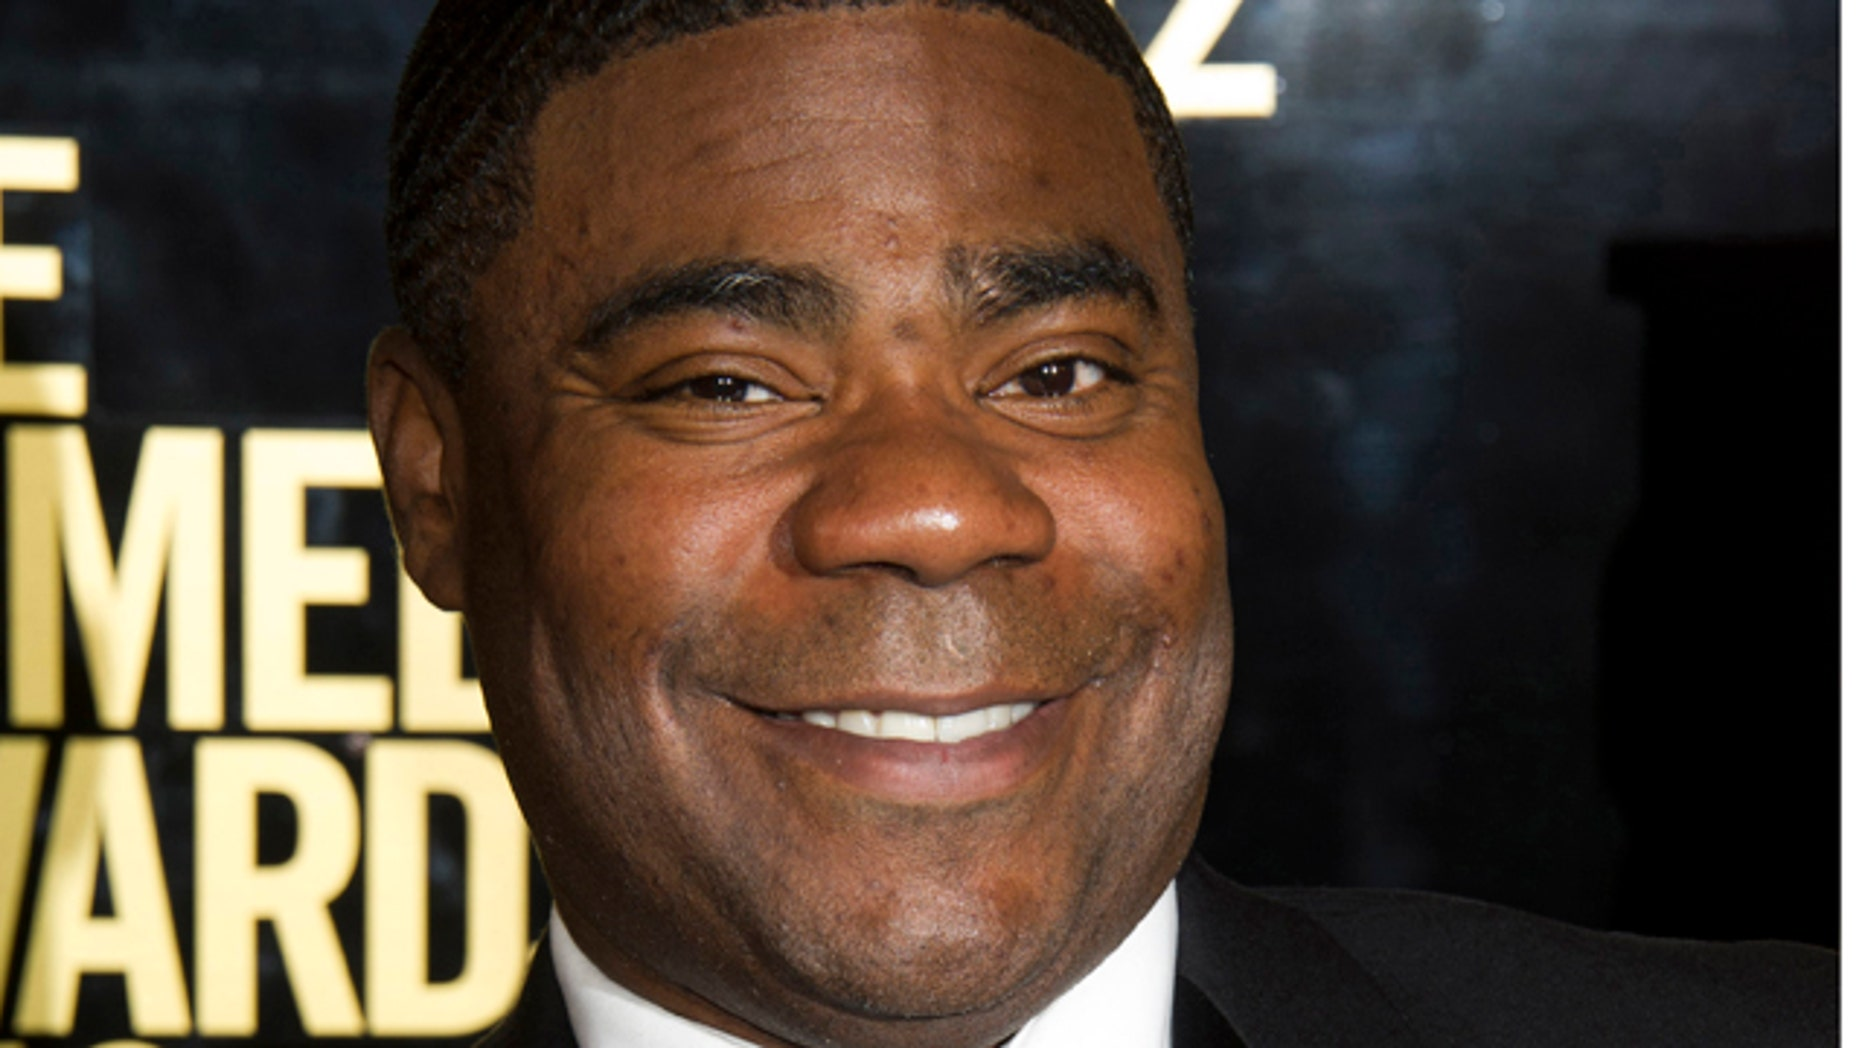 FILE - This April 28, 2012 file photo shows Tracy Morgan at The 2012 Comedy Awards in New York. (AP Photo/Charles Sykes, File)